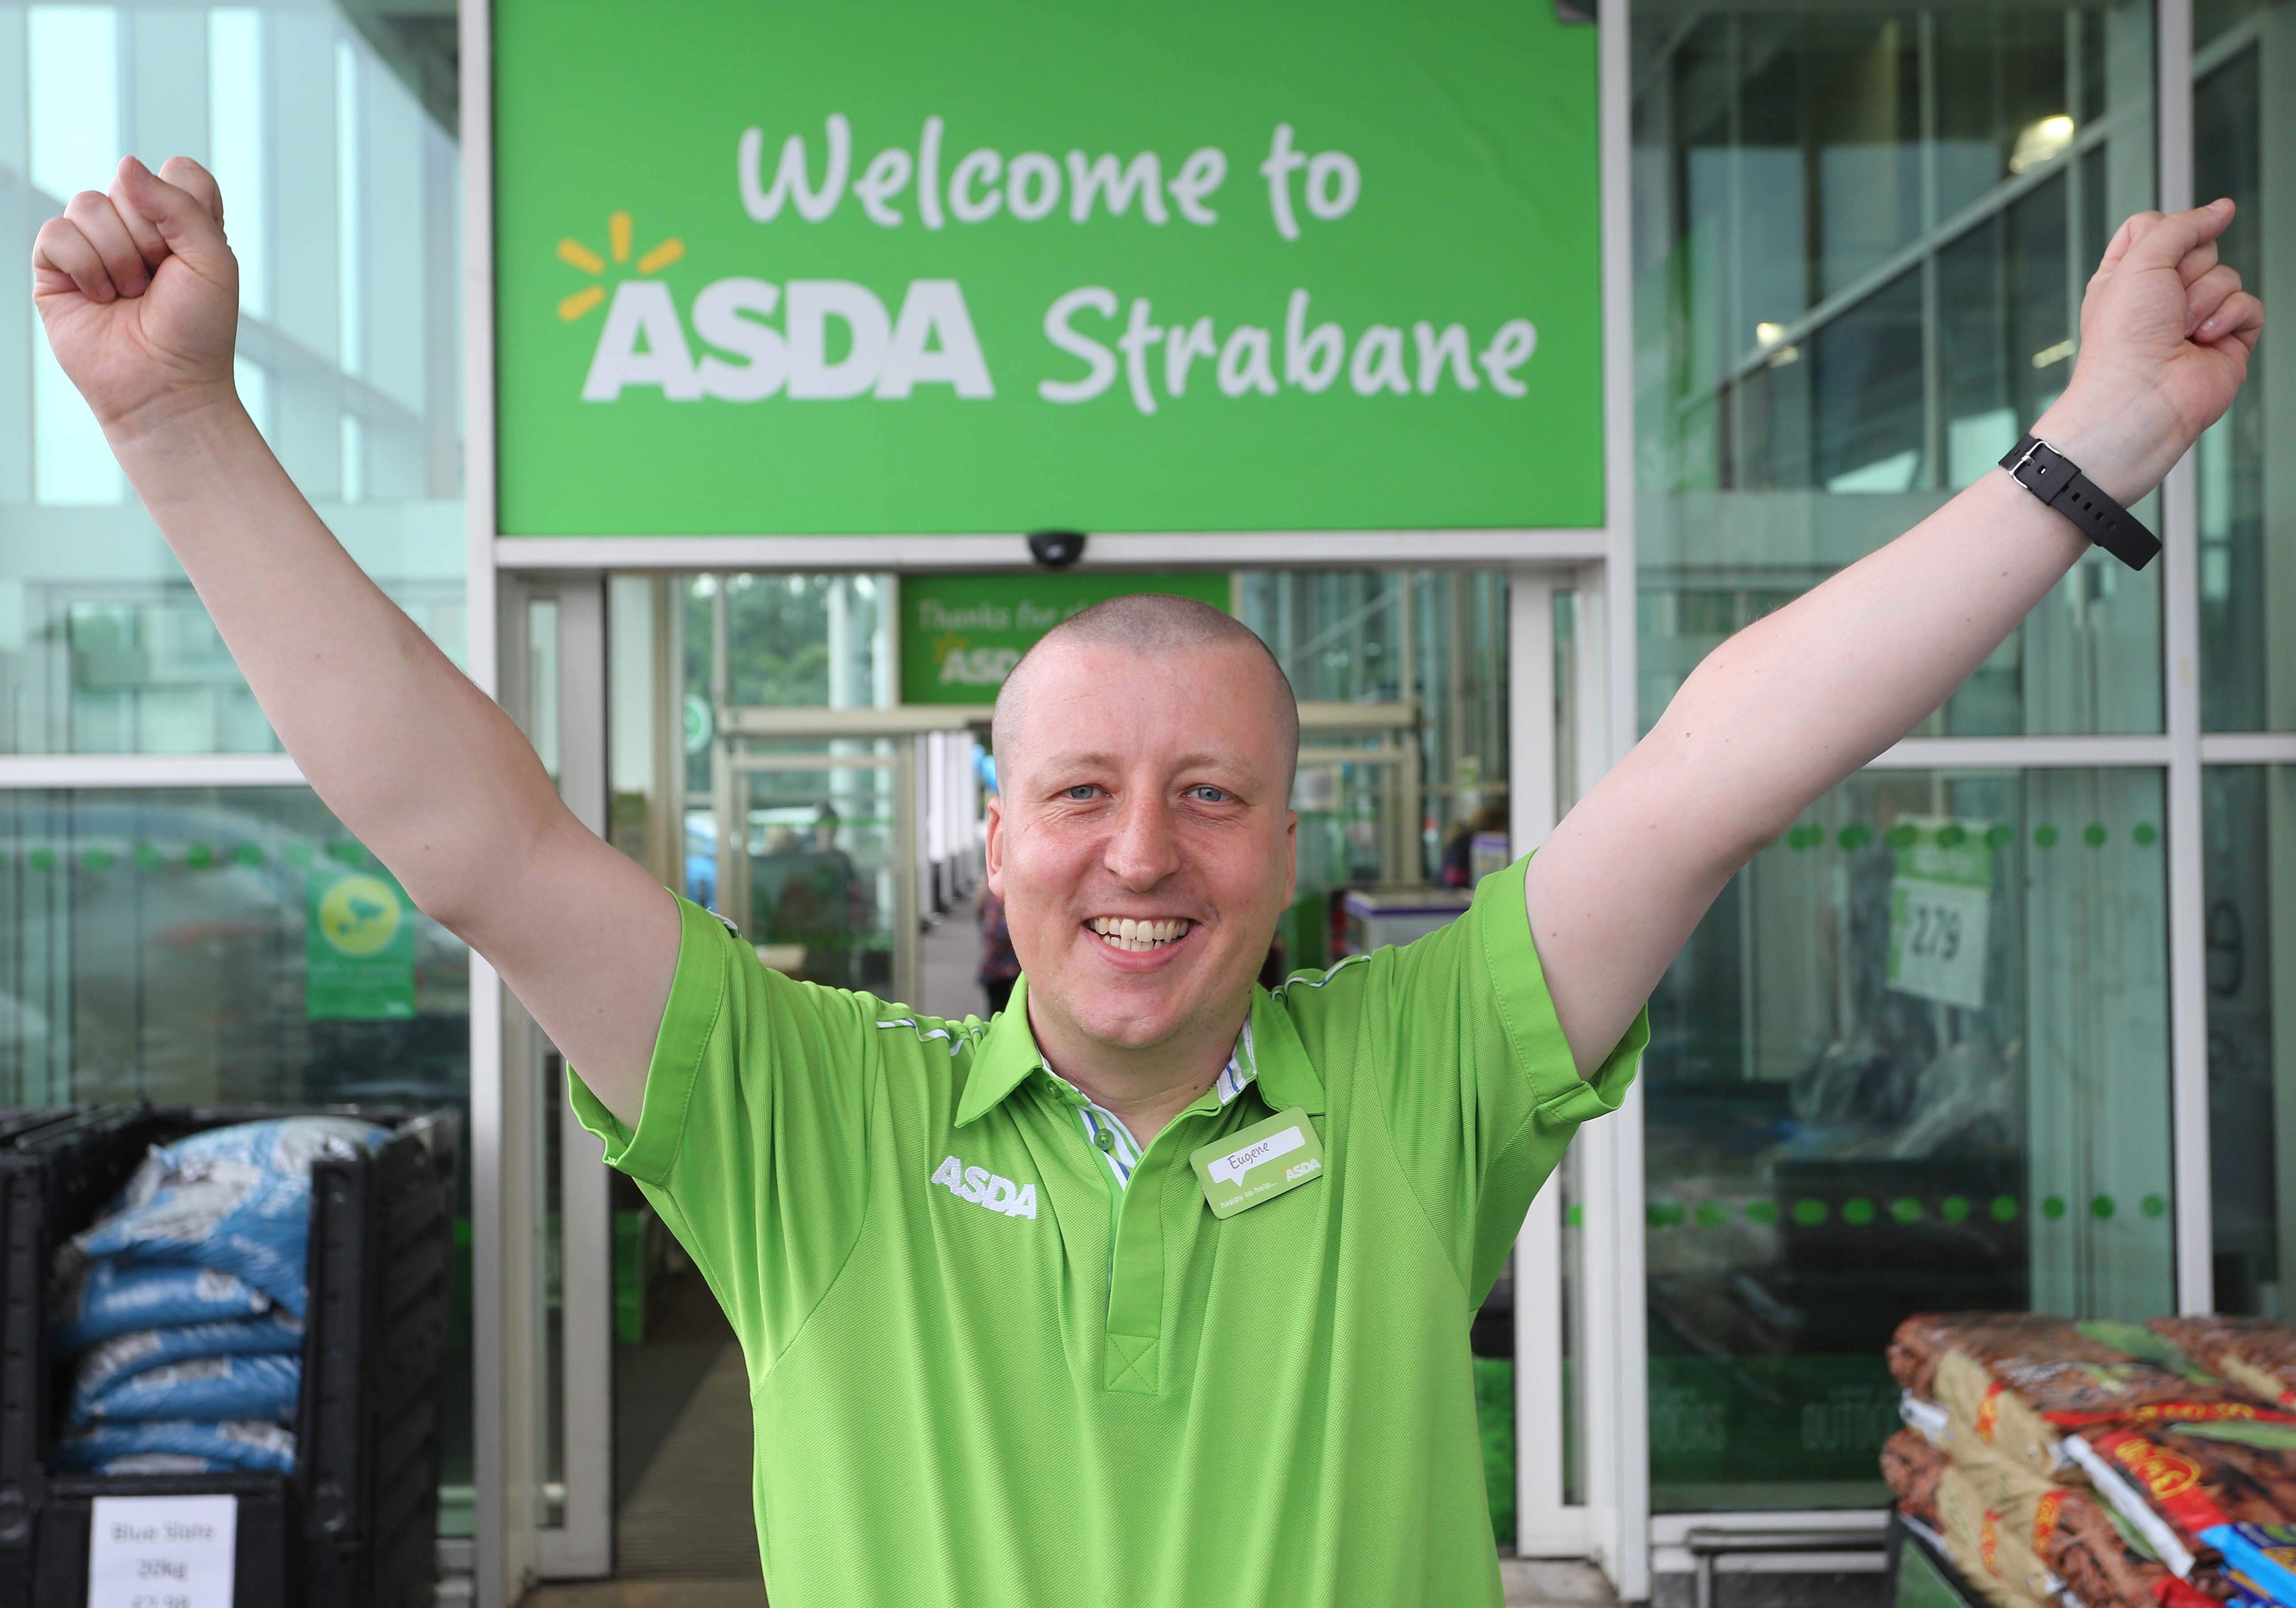 Asda Strabane colleague Eugene McGeever is heading to the Special Olympics